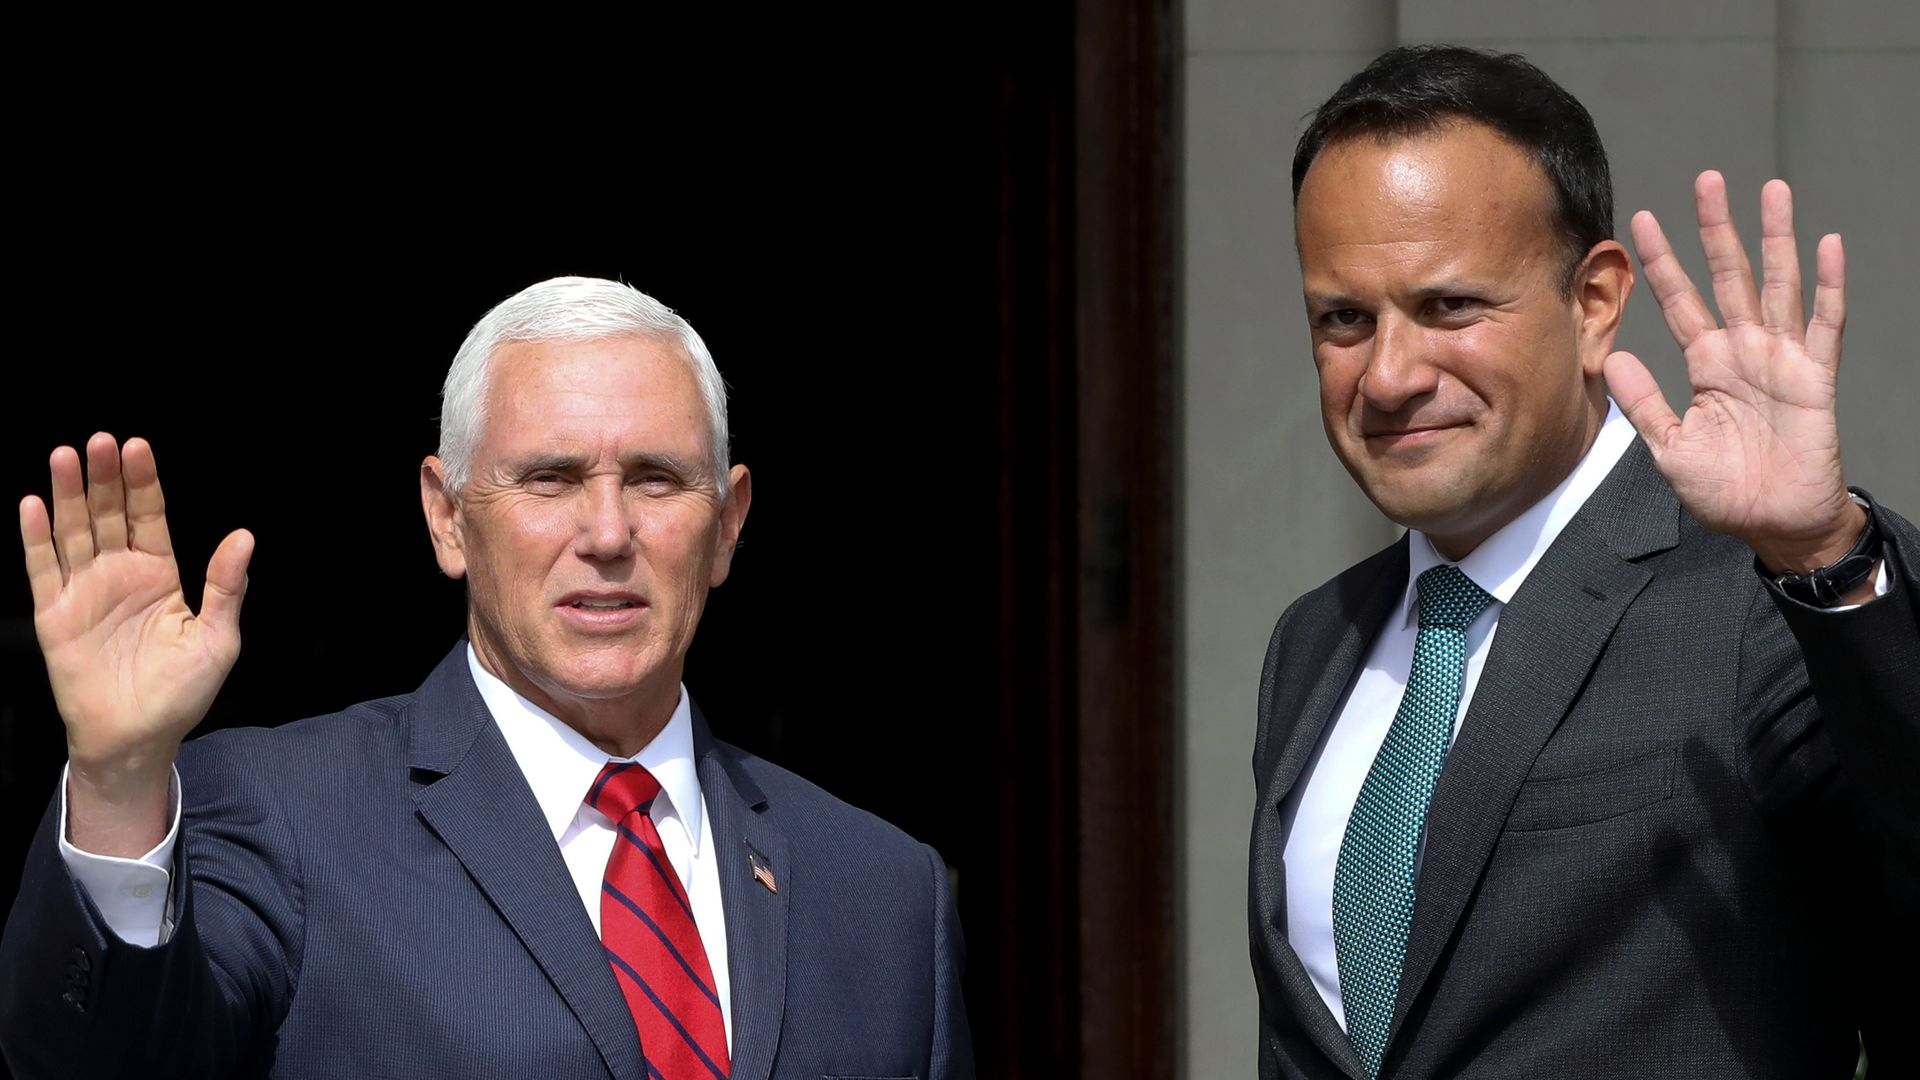 American Vice President Mike Pence meeting with Irish Prime Minister Leo Varadkar in Dublin.